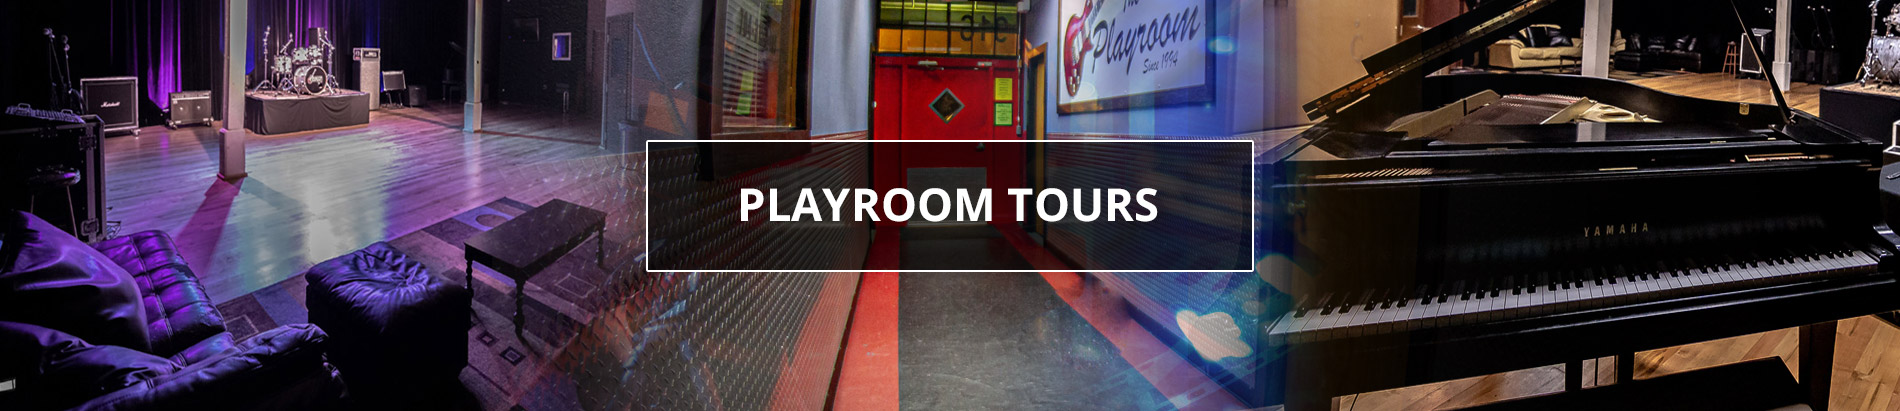 Playroom Tours